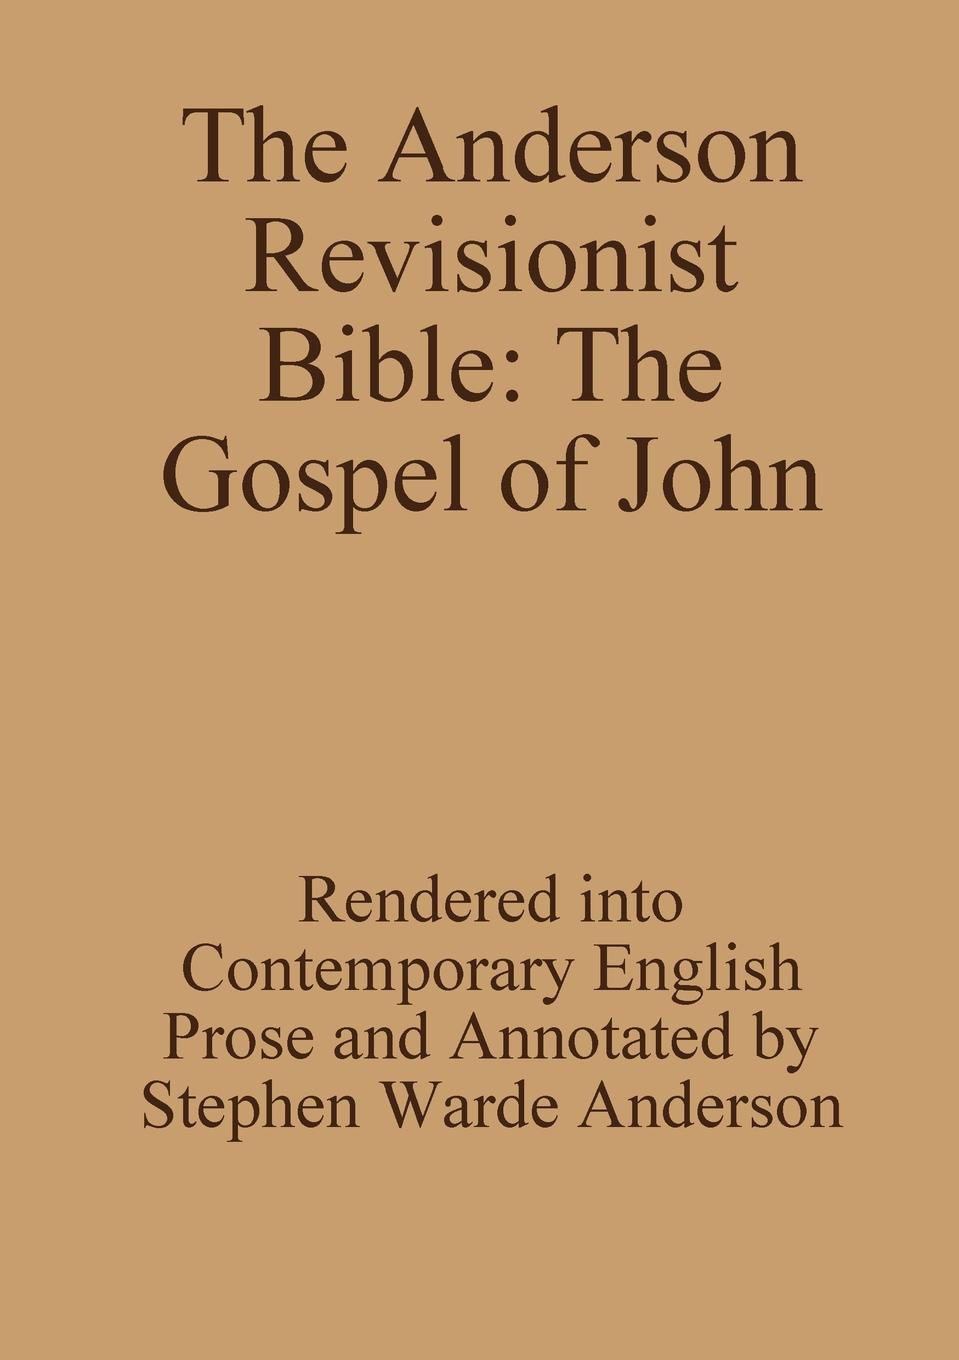 Stephen Warde Anderson The Revisionist Bible. Gospel of John